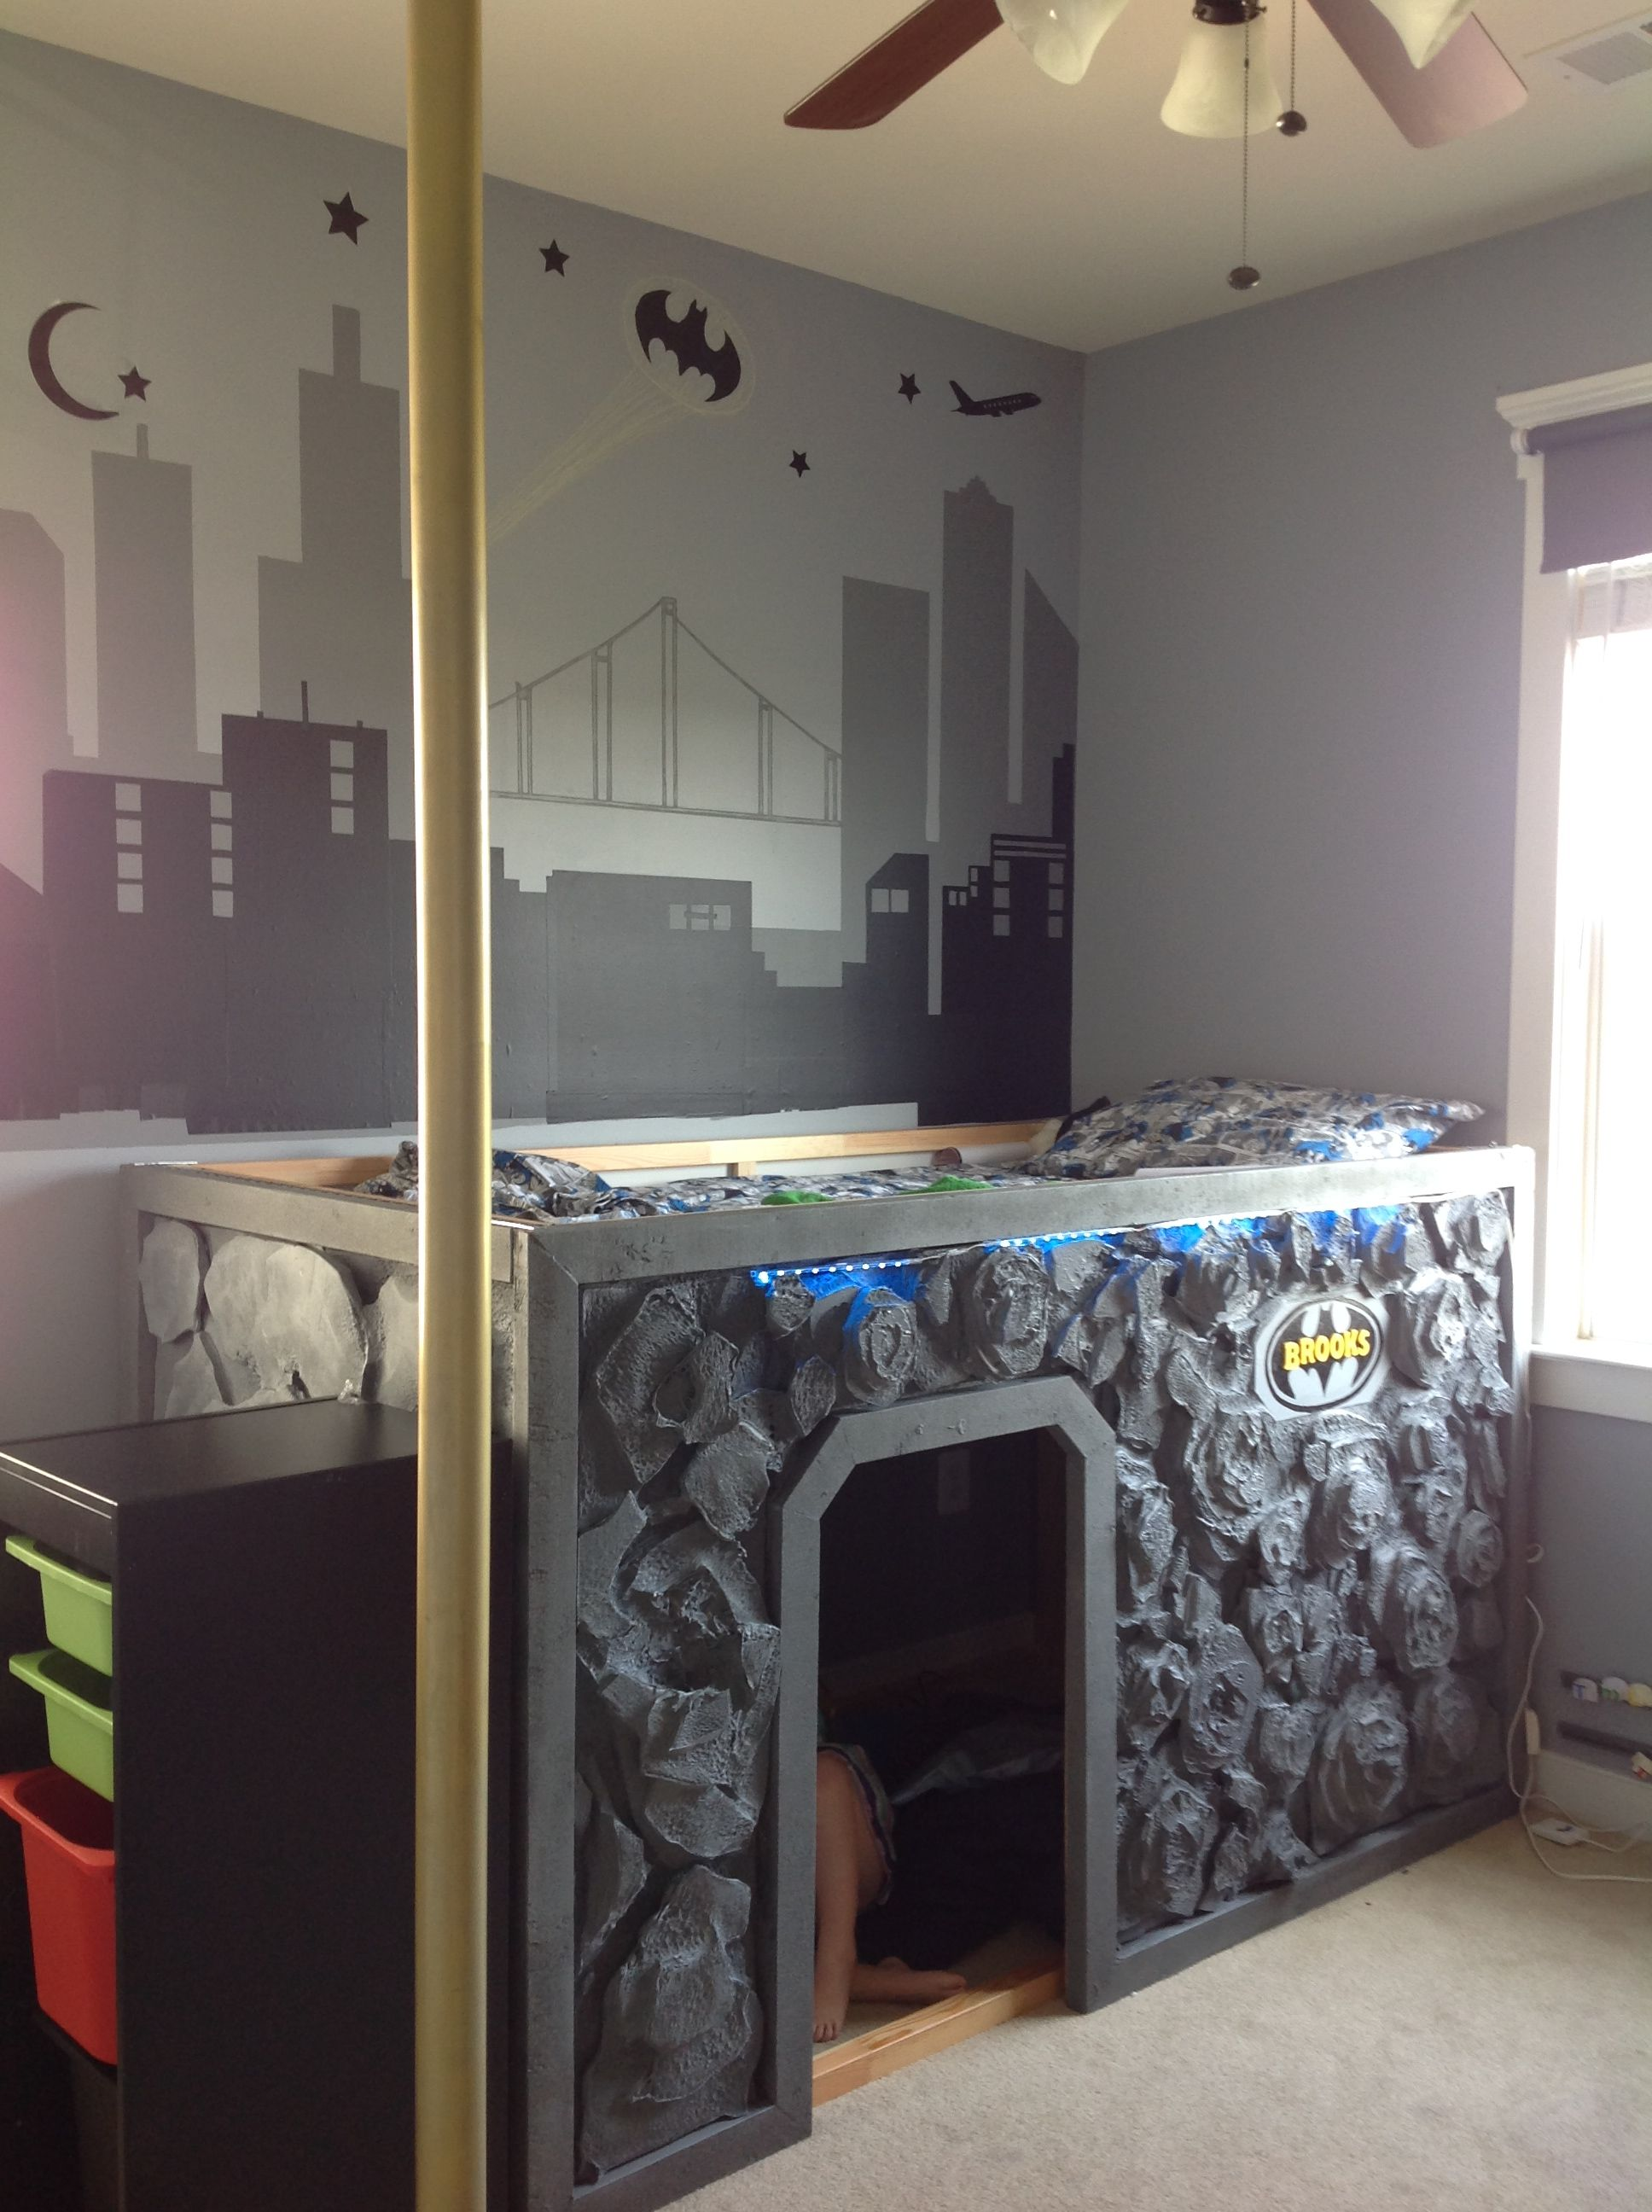 Superhero Bed Bat Cave In Brooks Room Used Ikea Kura And Designed From There